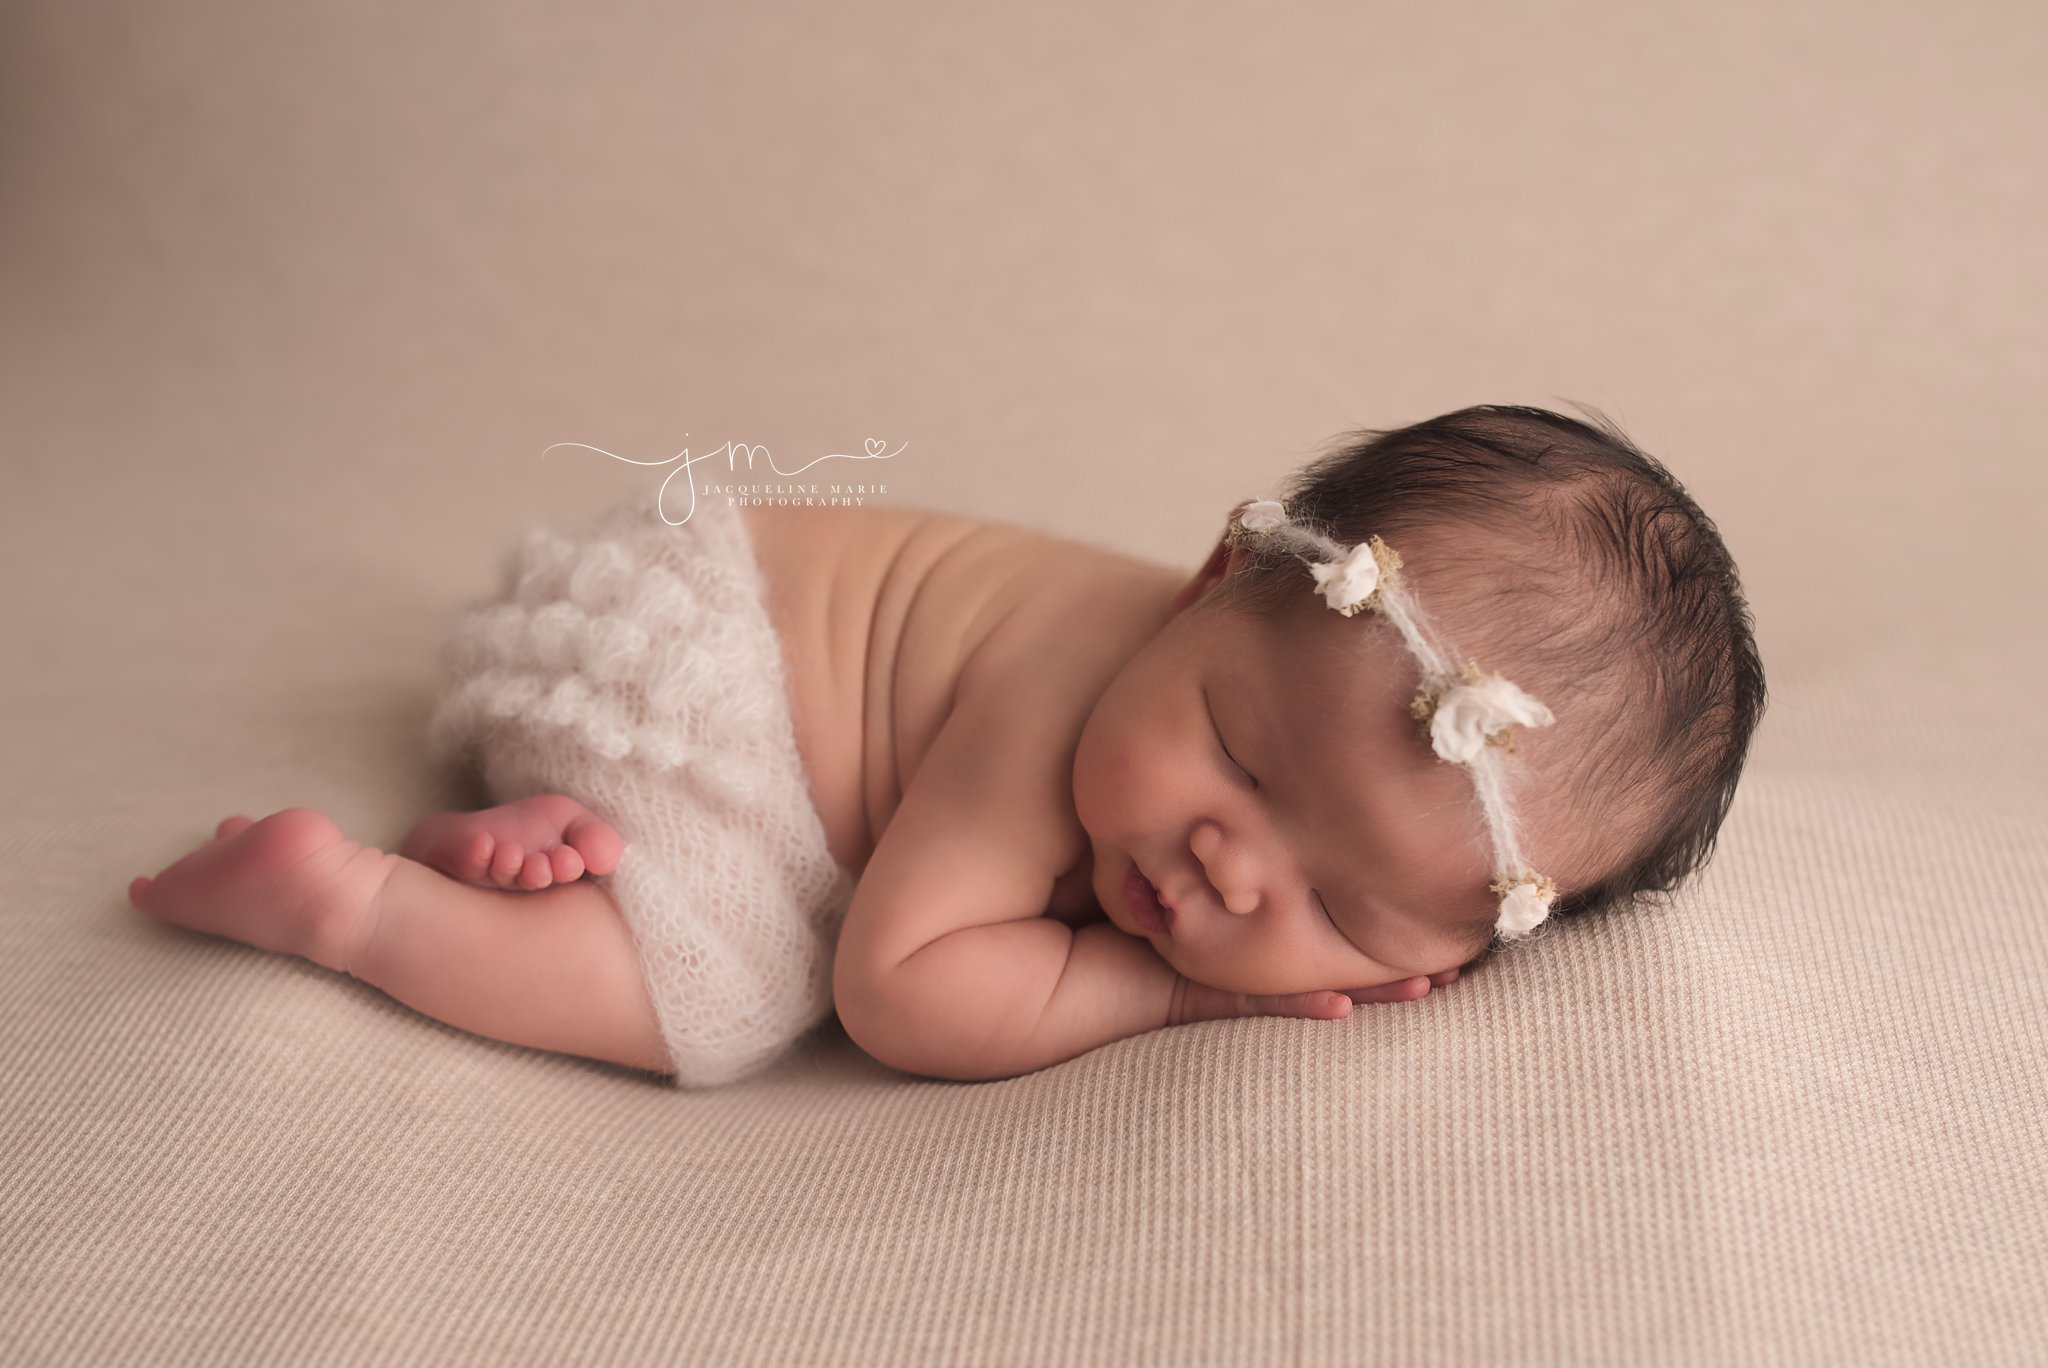 Columbus Ohio 9 day old newborn wears cream ruffle pants for newborn session at Jacqueline Marie Photography studio